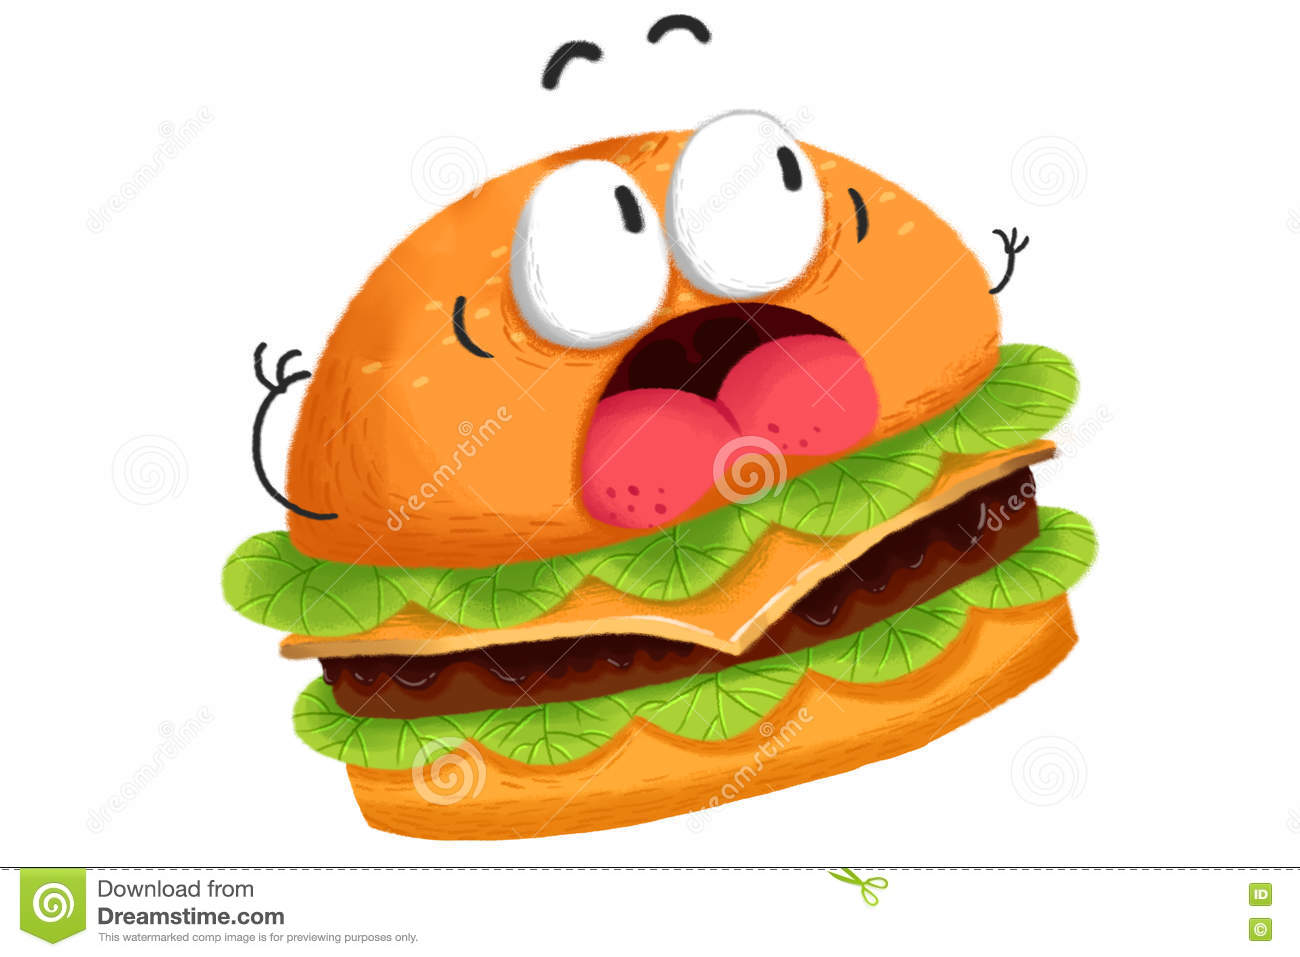 Creative Illustration And Innovative Art Frightened Hamburger